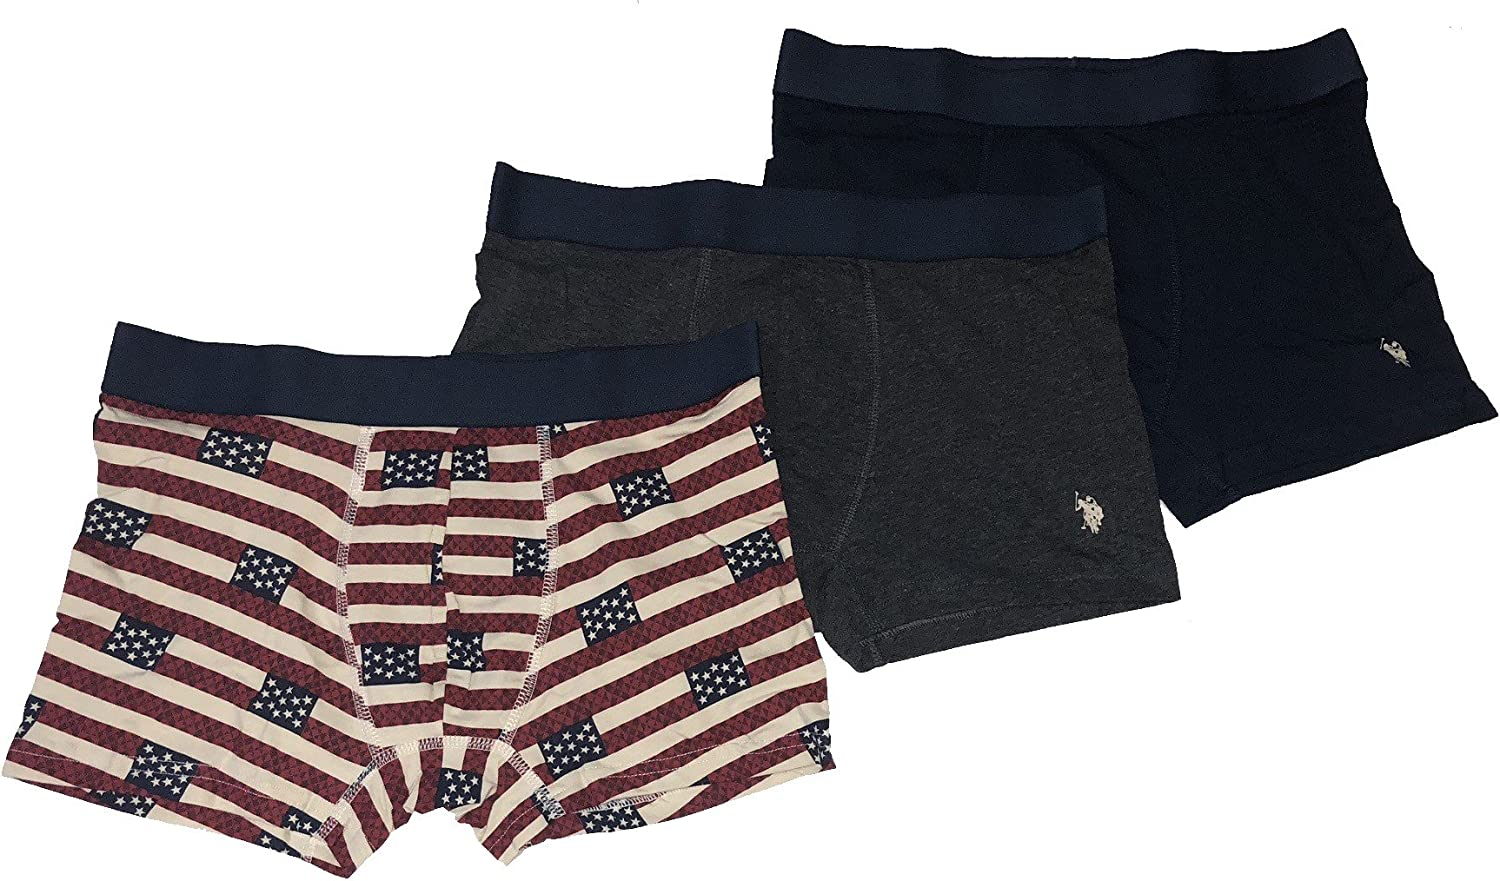 U.S. Polo Assn. Men's 3-Pack Stretch Trunks Cotton Boxer Briefs